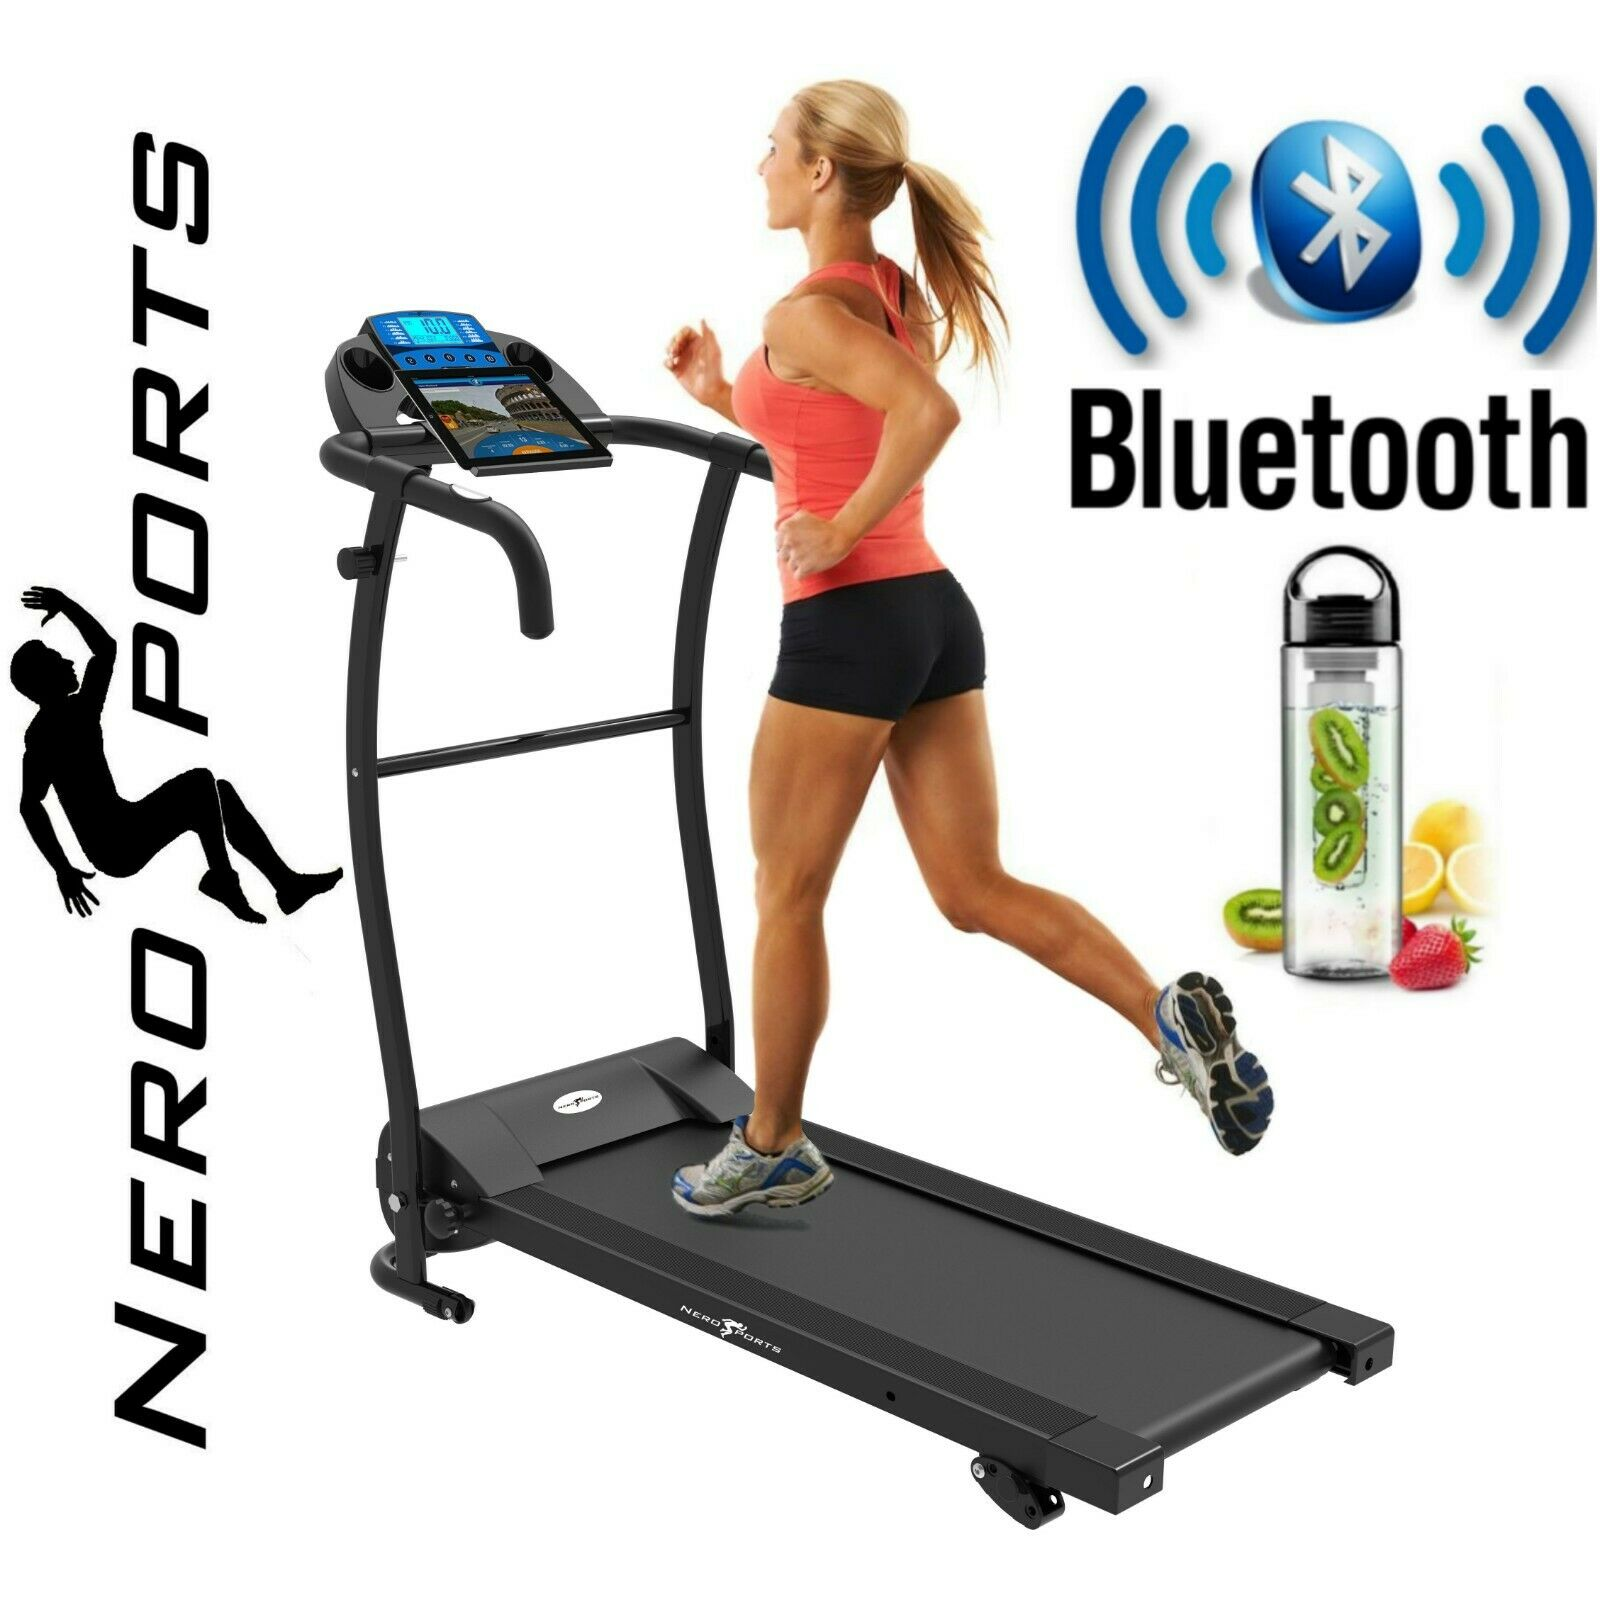 TREADMILL NERO PRO Electric Folding Running Machine w Bluetooth